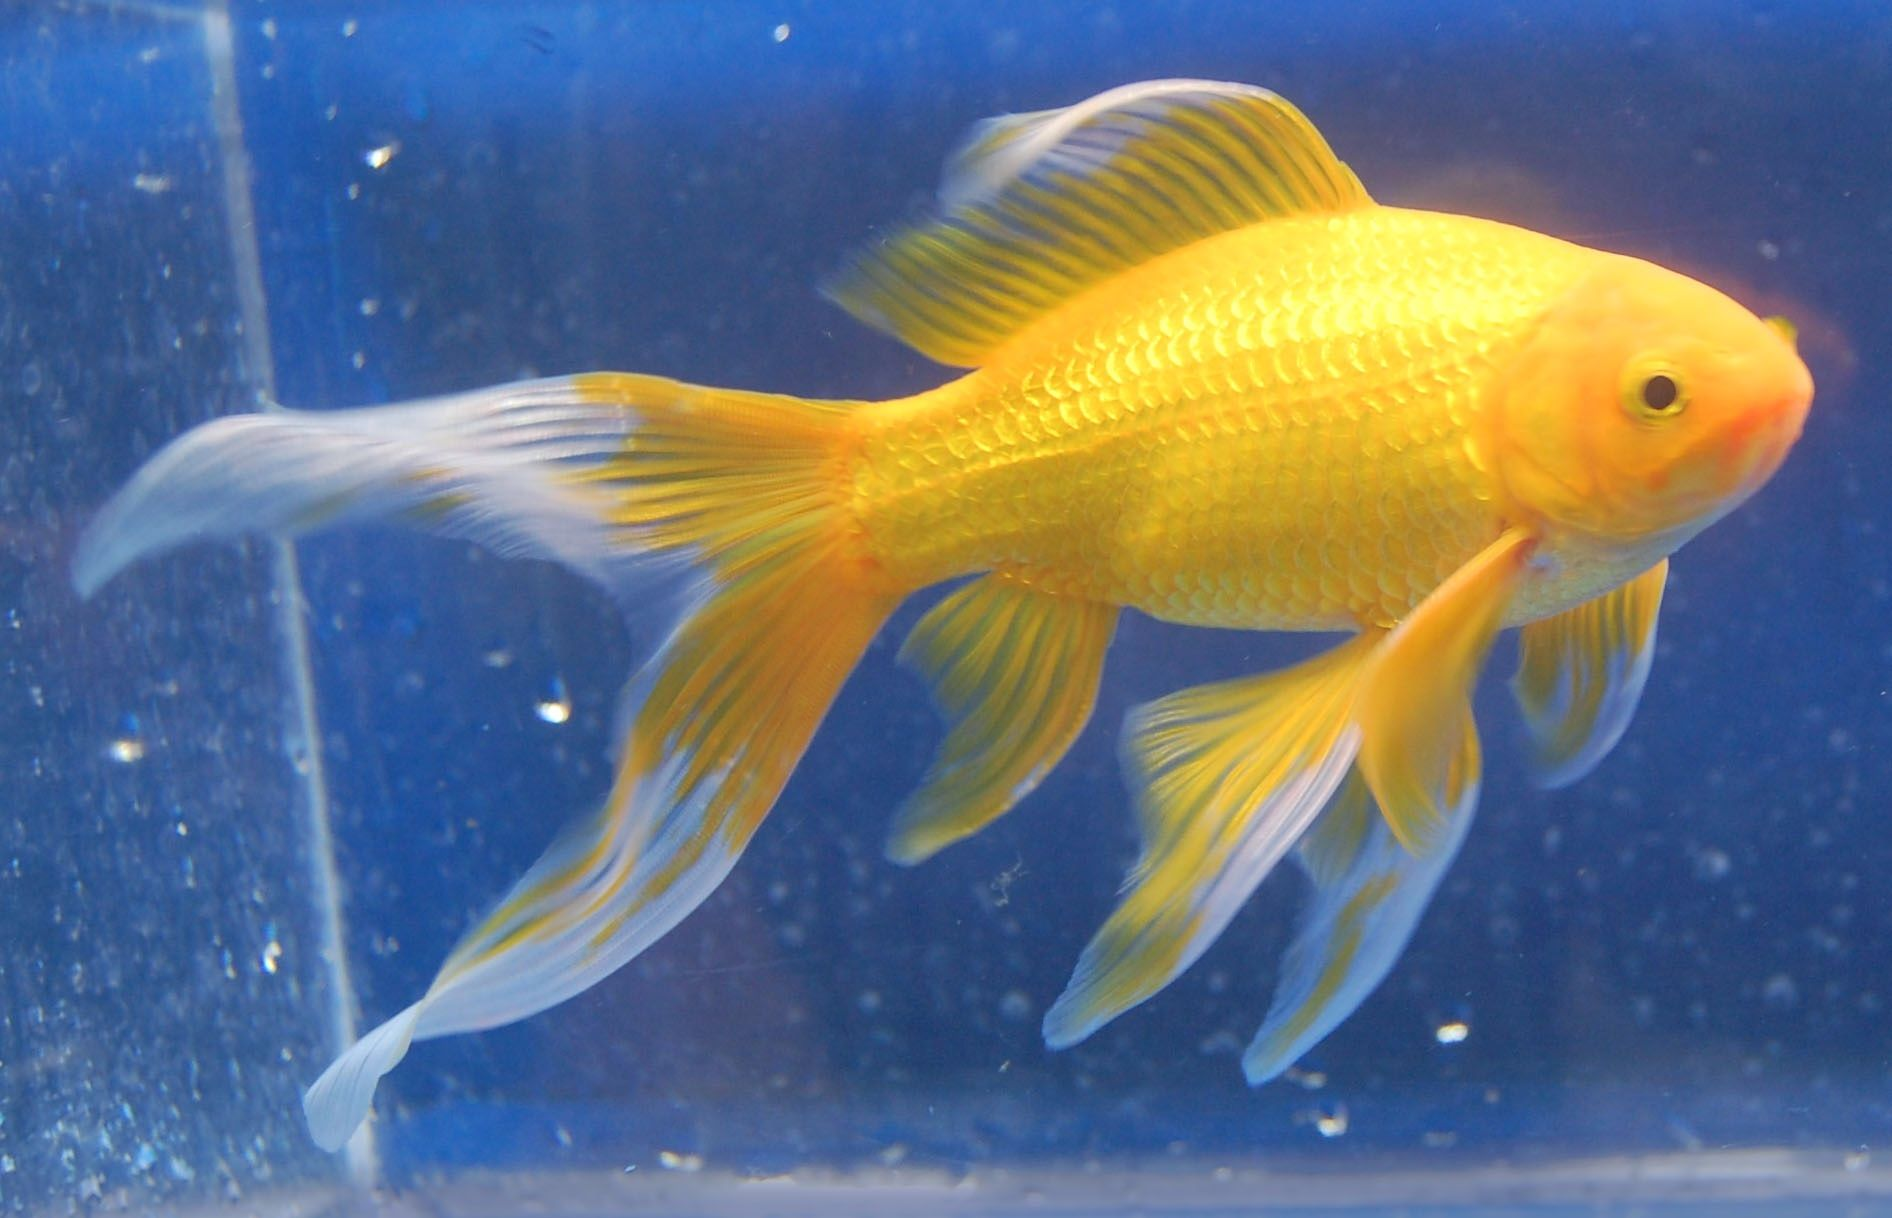 Goldfish Yellow Comet Goldfish For The Pond Pinterest Goldfish Fish And Comet Goldfish